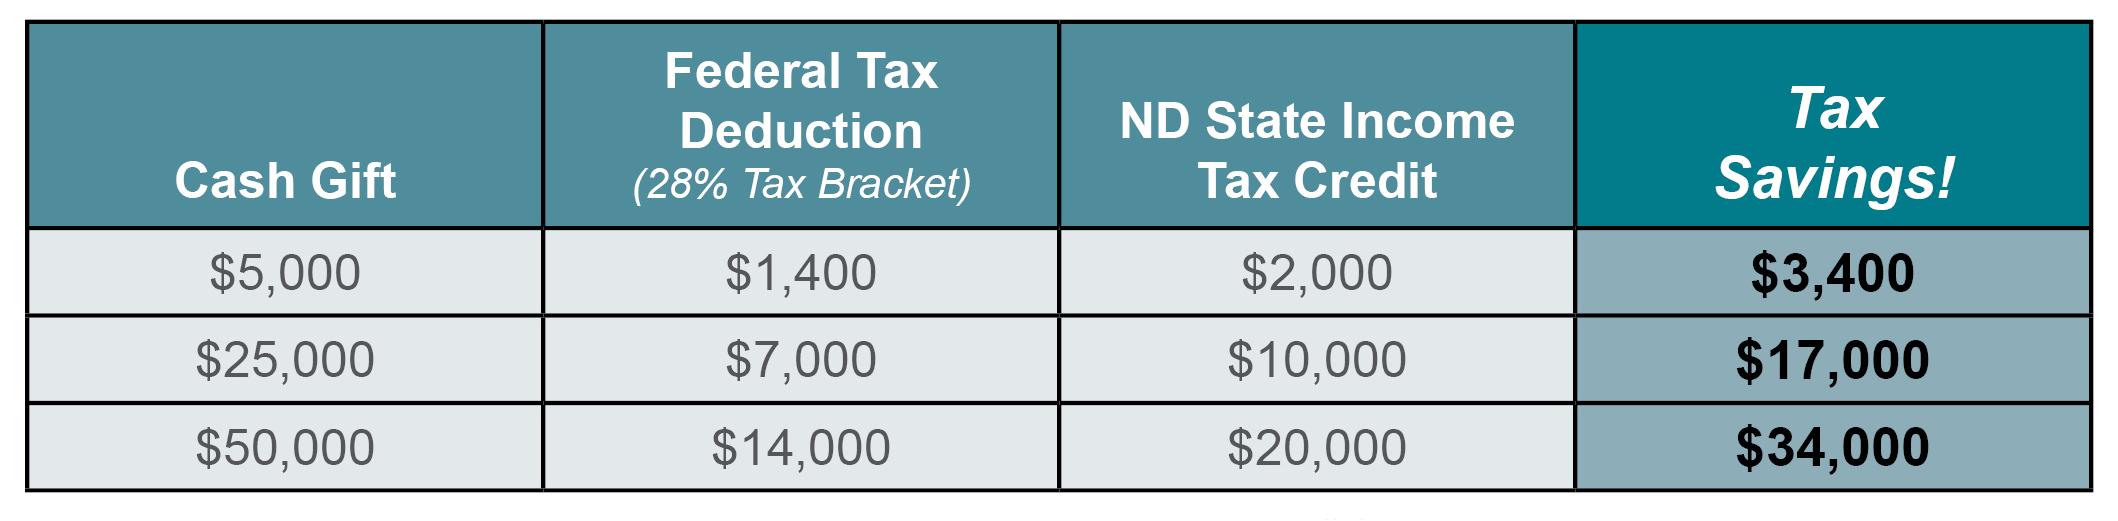 ND Tax Credit